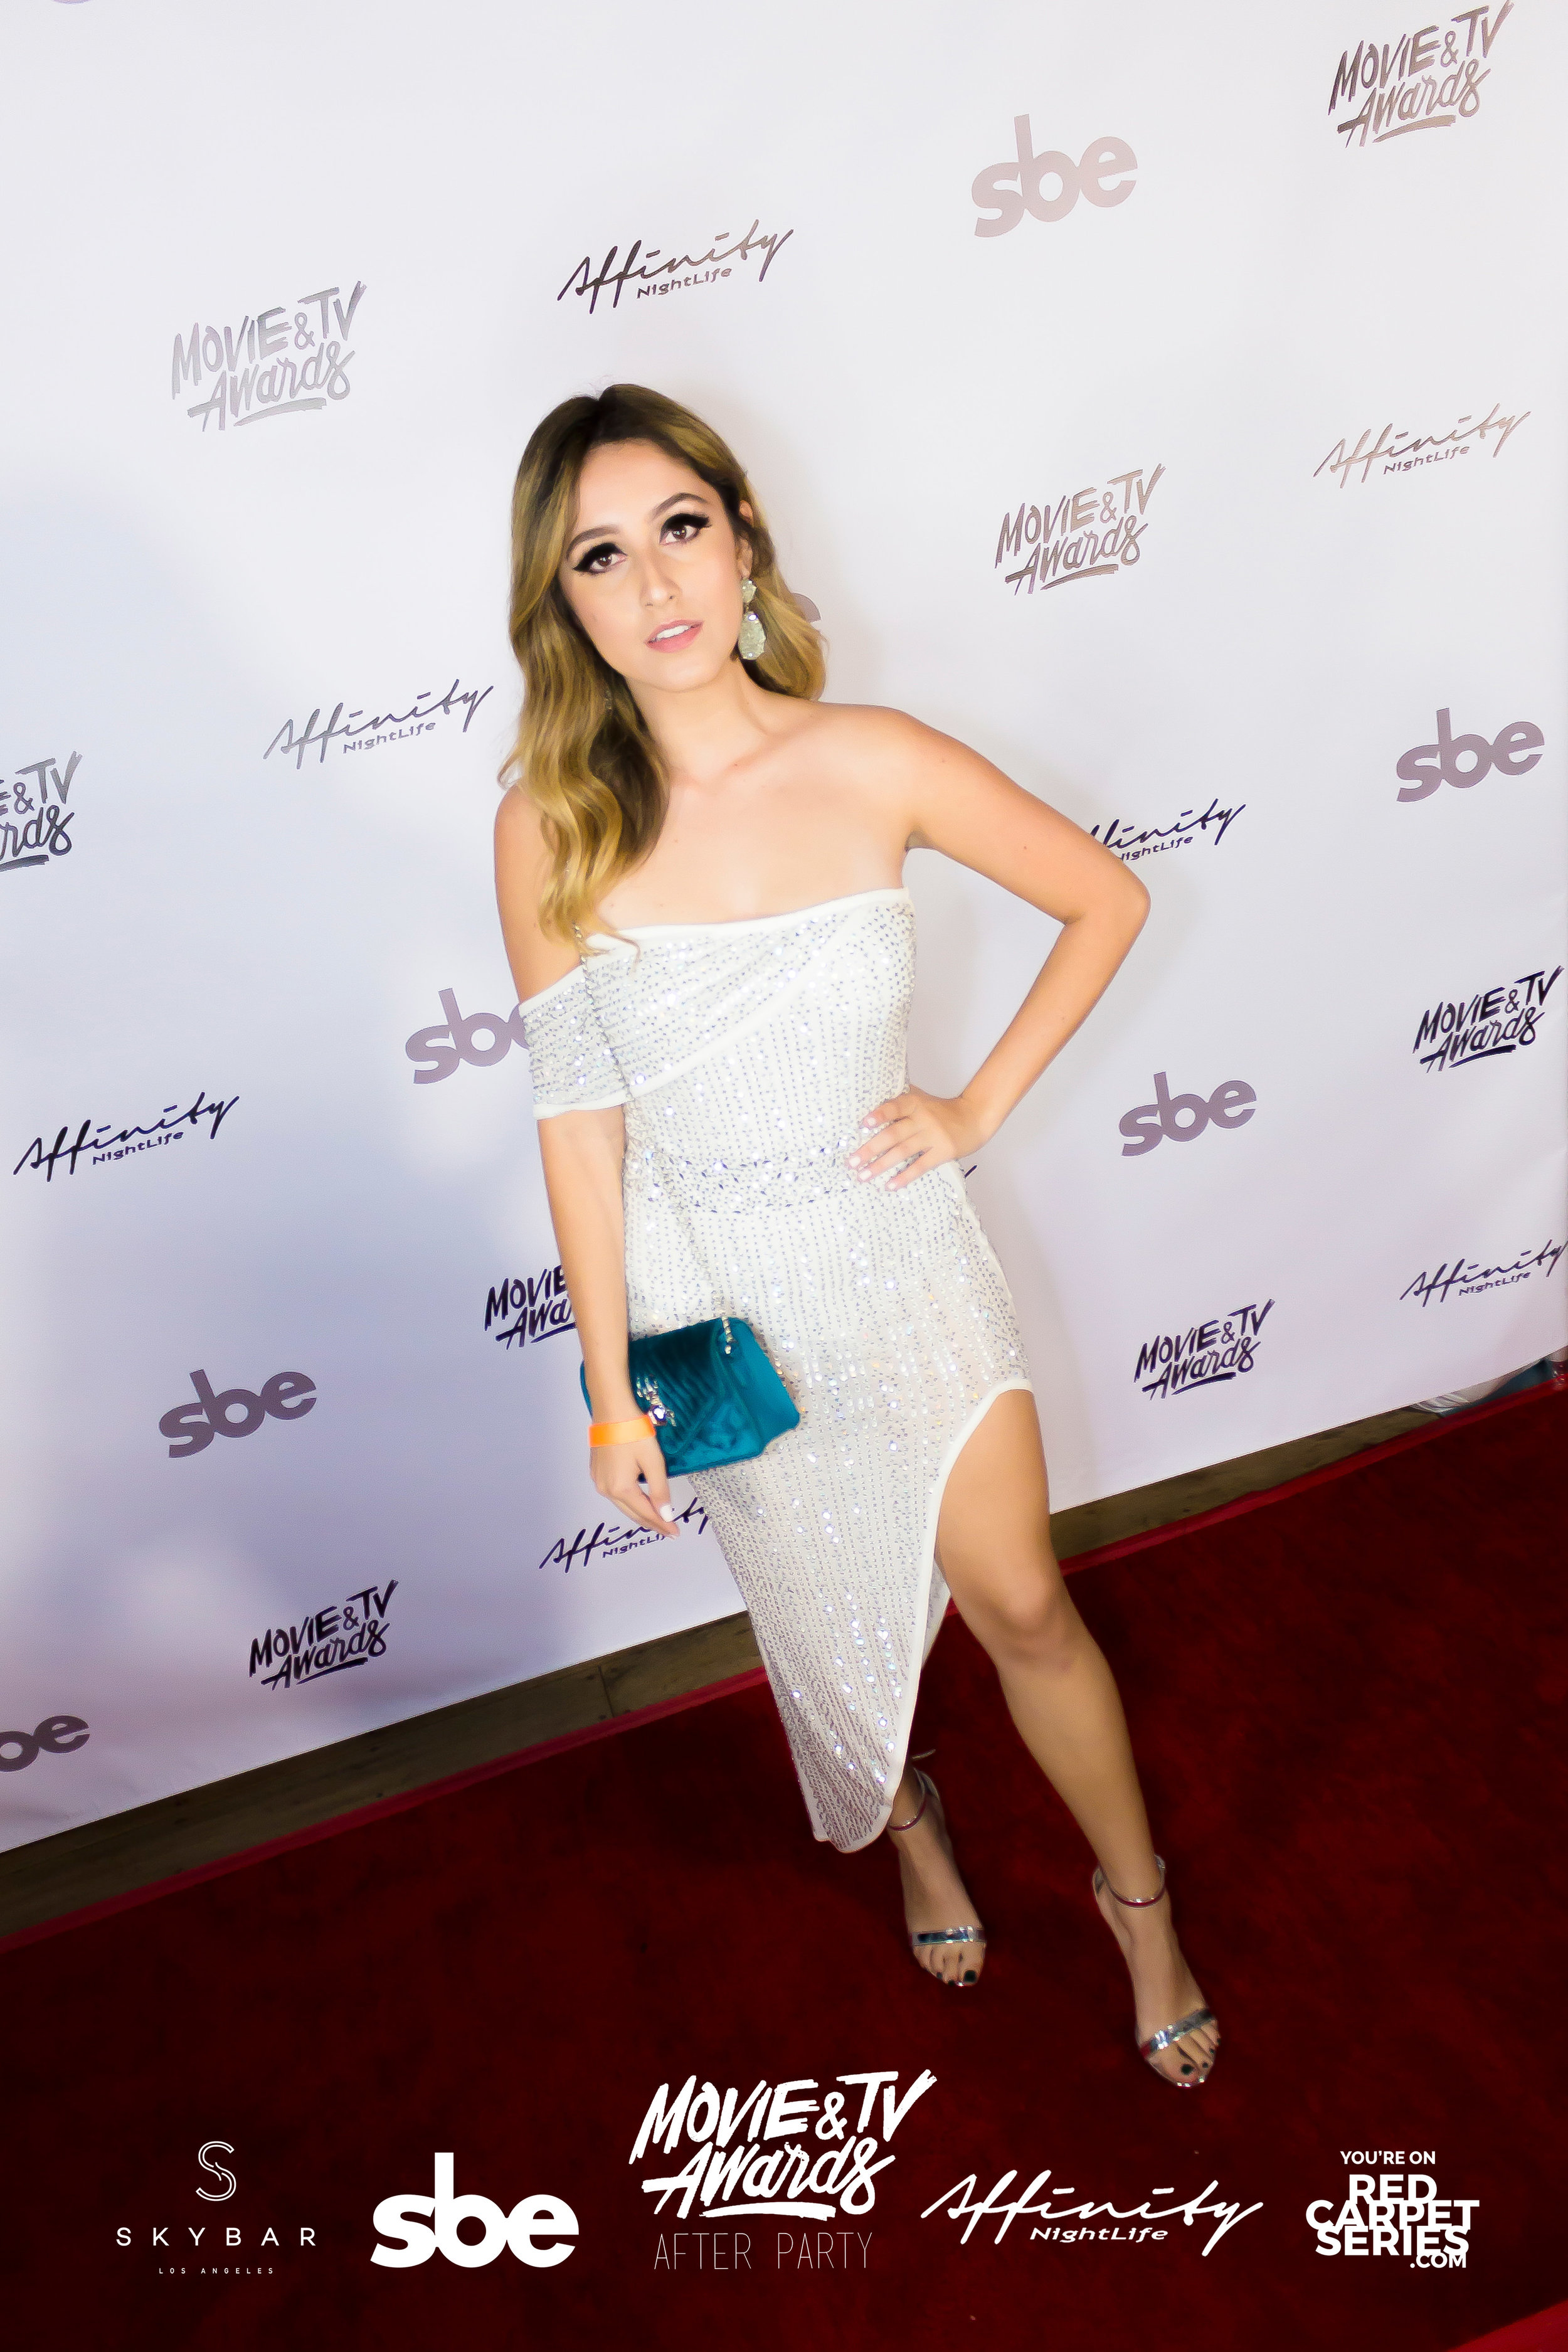 Affinity Nightlife MTV Movie & TV Awards After Party - Skybar at Mondrian - 06-15-19 - Vol. 2_1.jpg